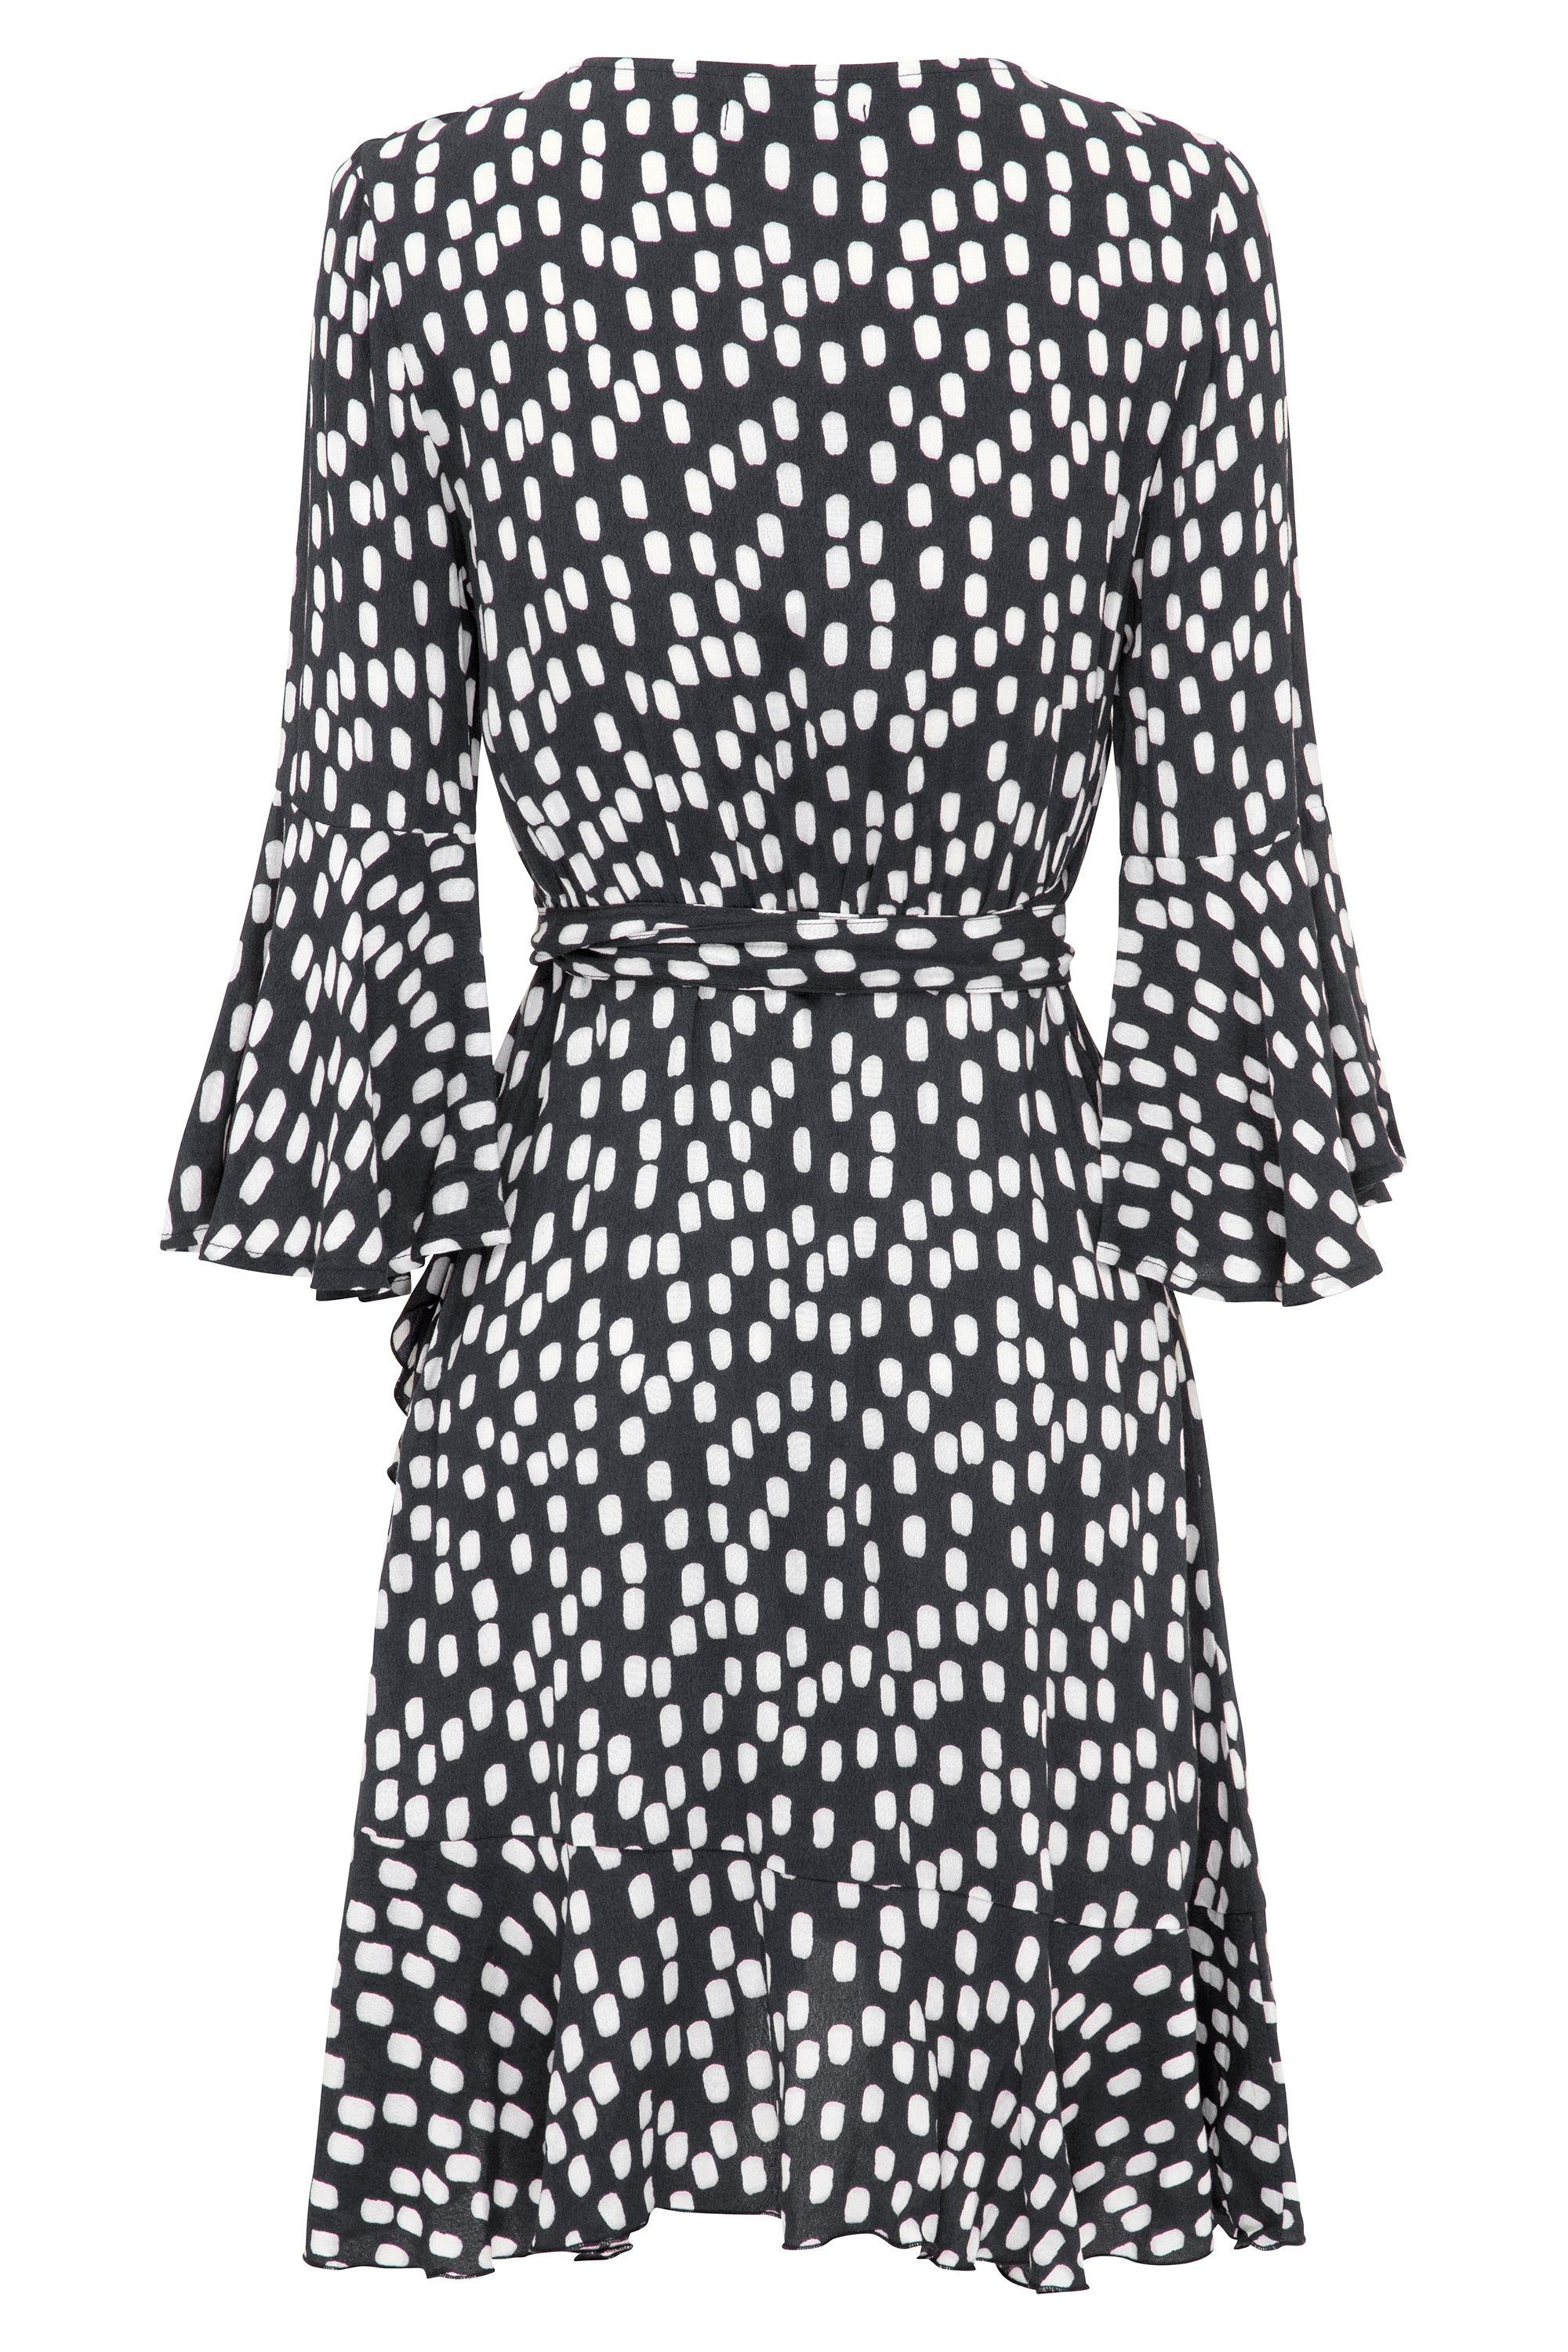 Colette Dress In Charcoal